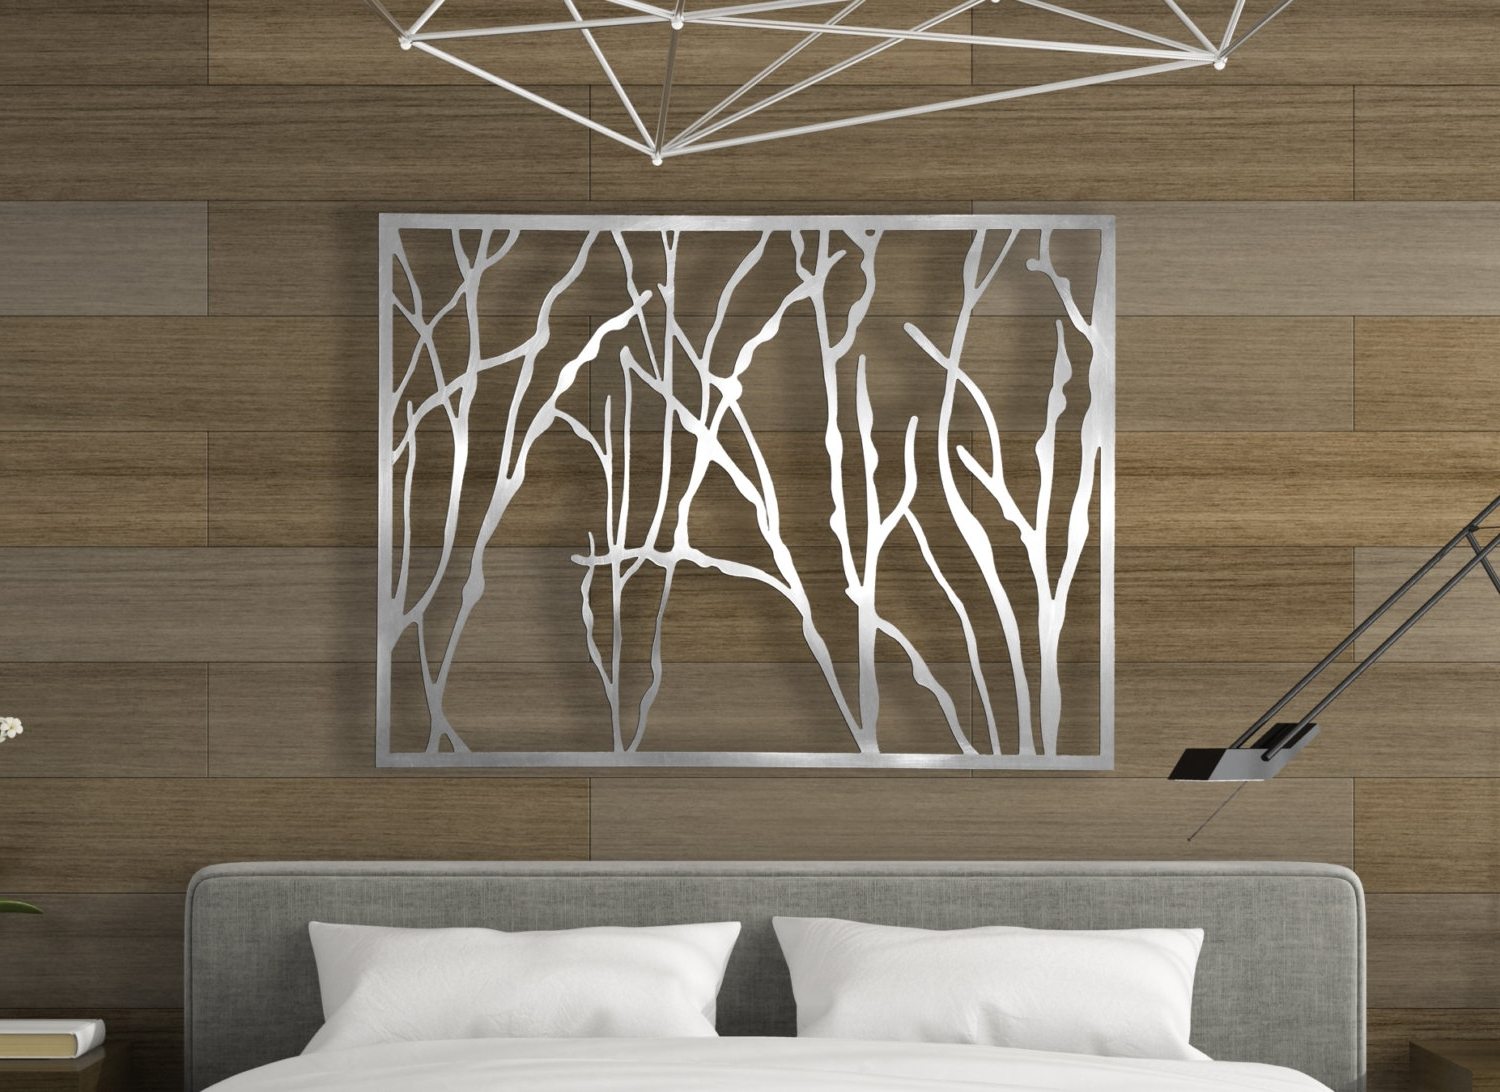 Metal Wall Art Panels With Widely Used Popular Metal Wall Art Panels : Andrews Living Arts – Good Design (View 9 of 15)